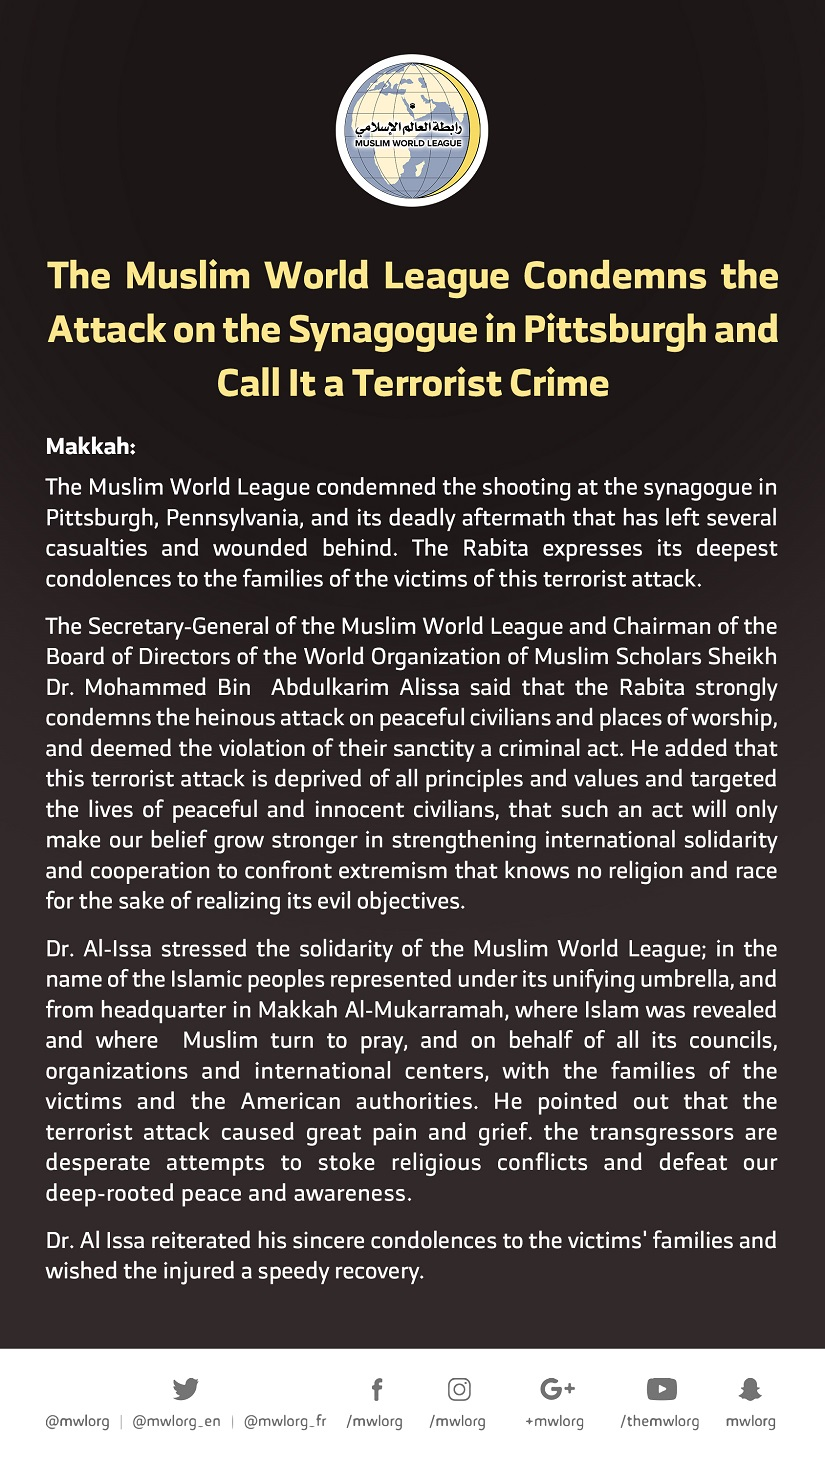 The #MuslimWorldLeague Condemns the Terrorist Attack Targetting a Synagogue in #Pittsburgh, USA: